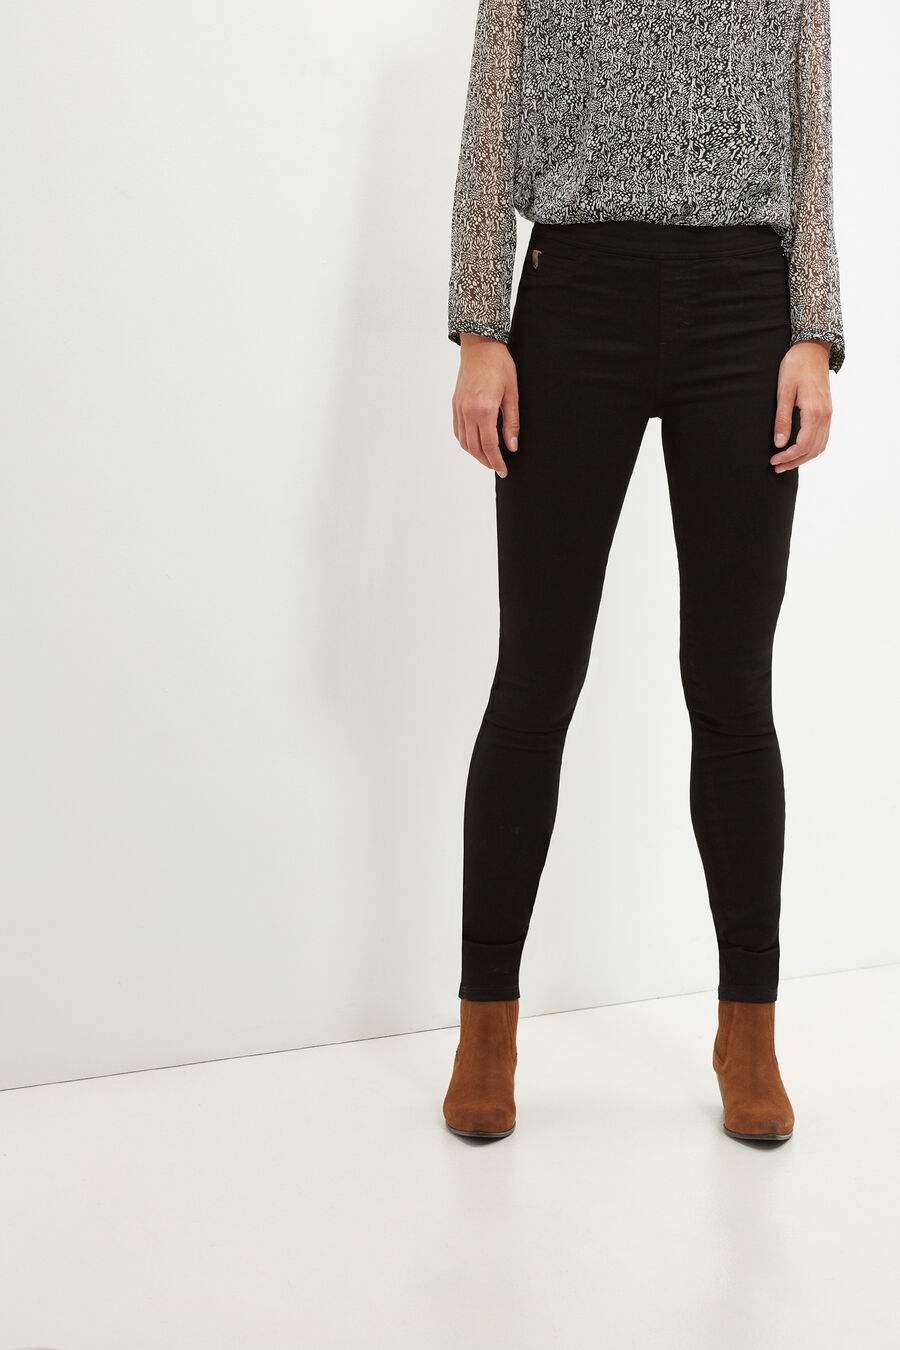 Ankle-length jeggings